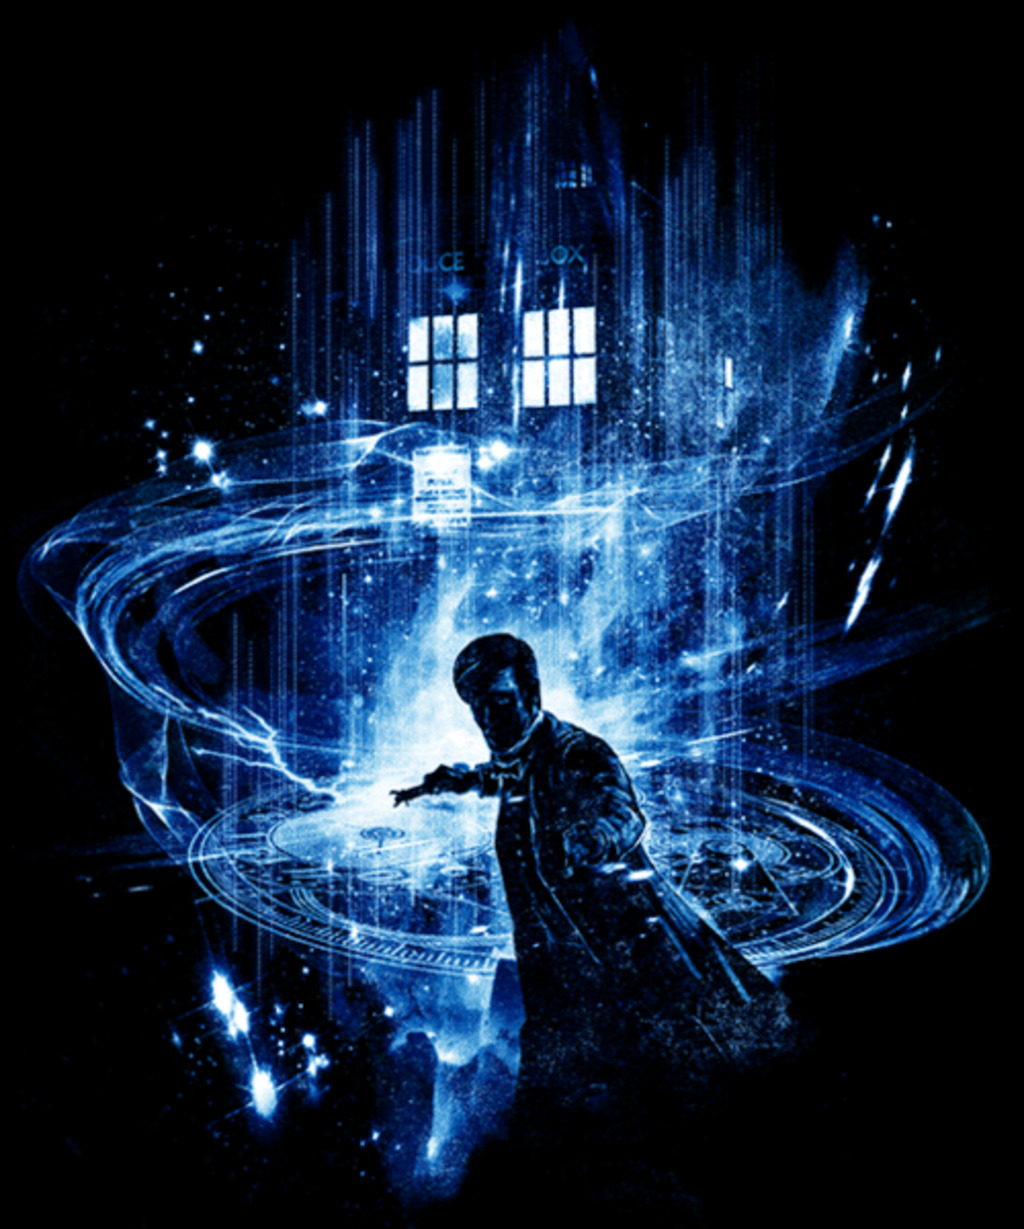 Qwertee: 11th time lord